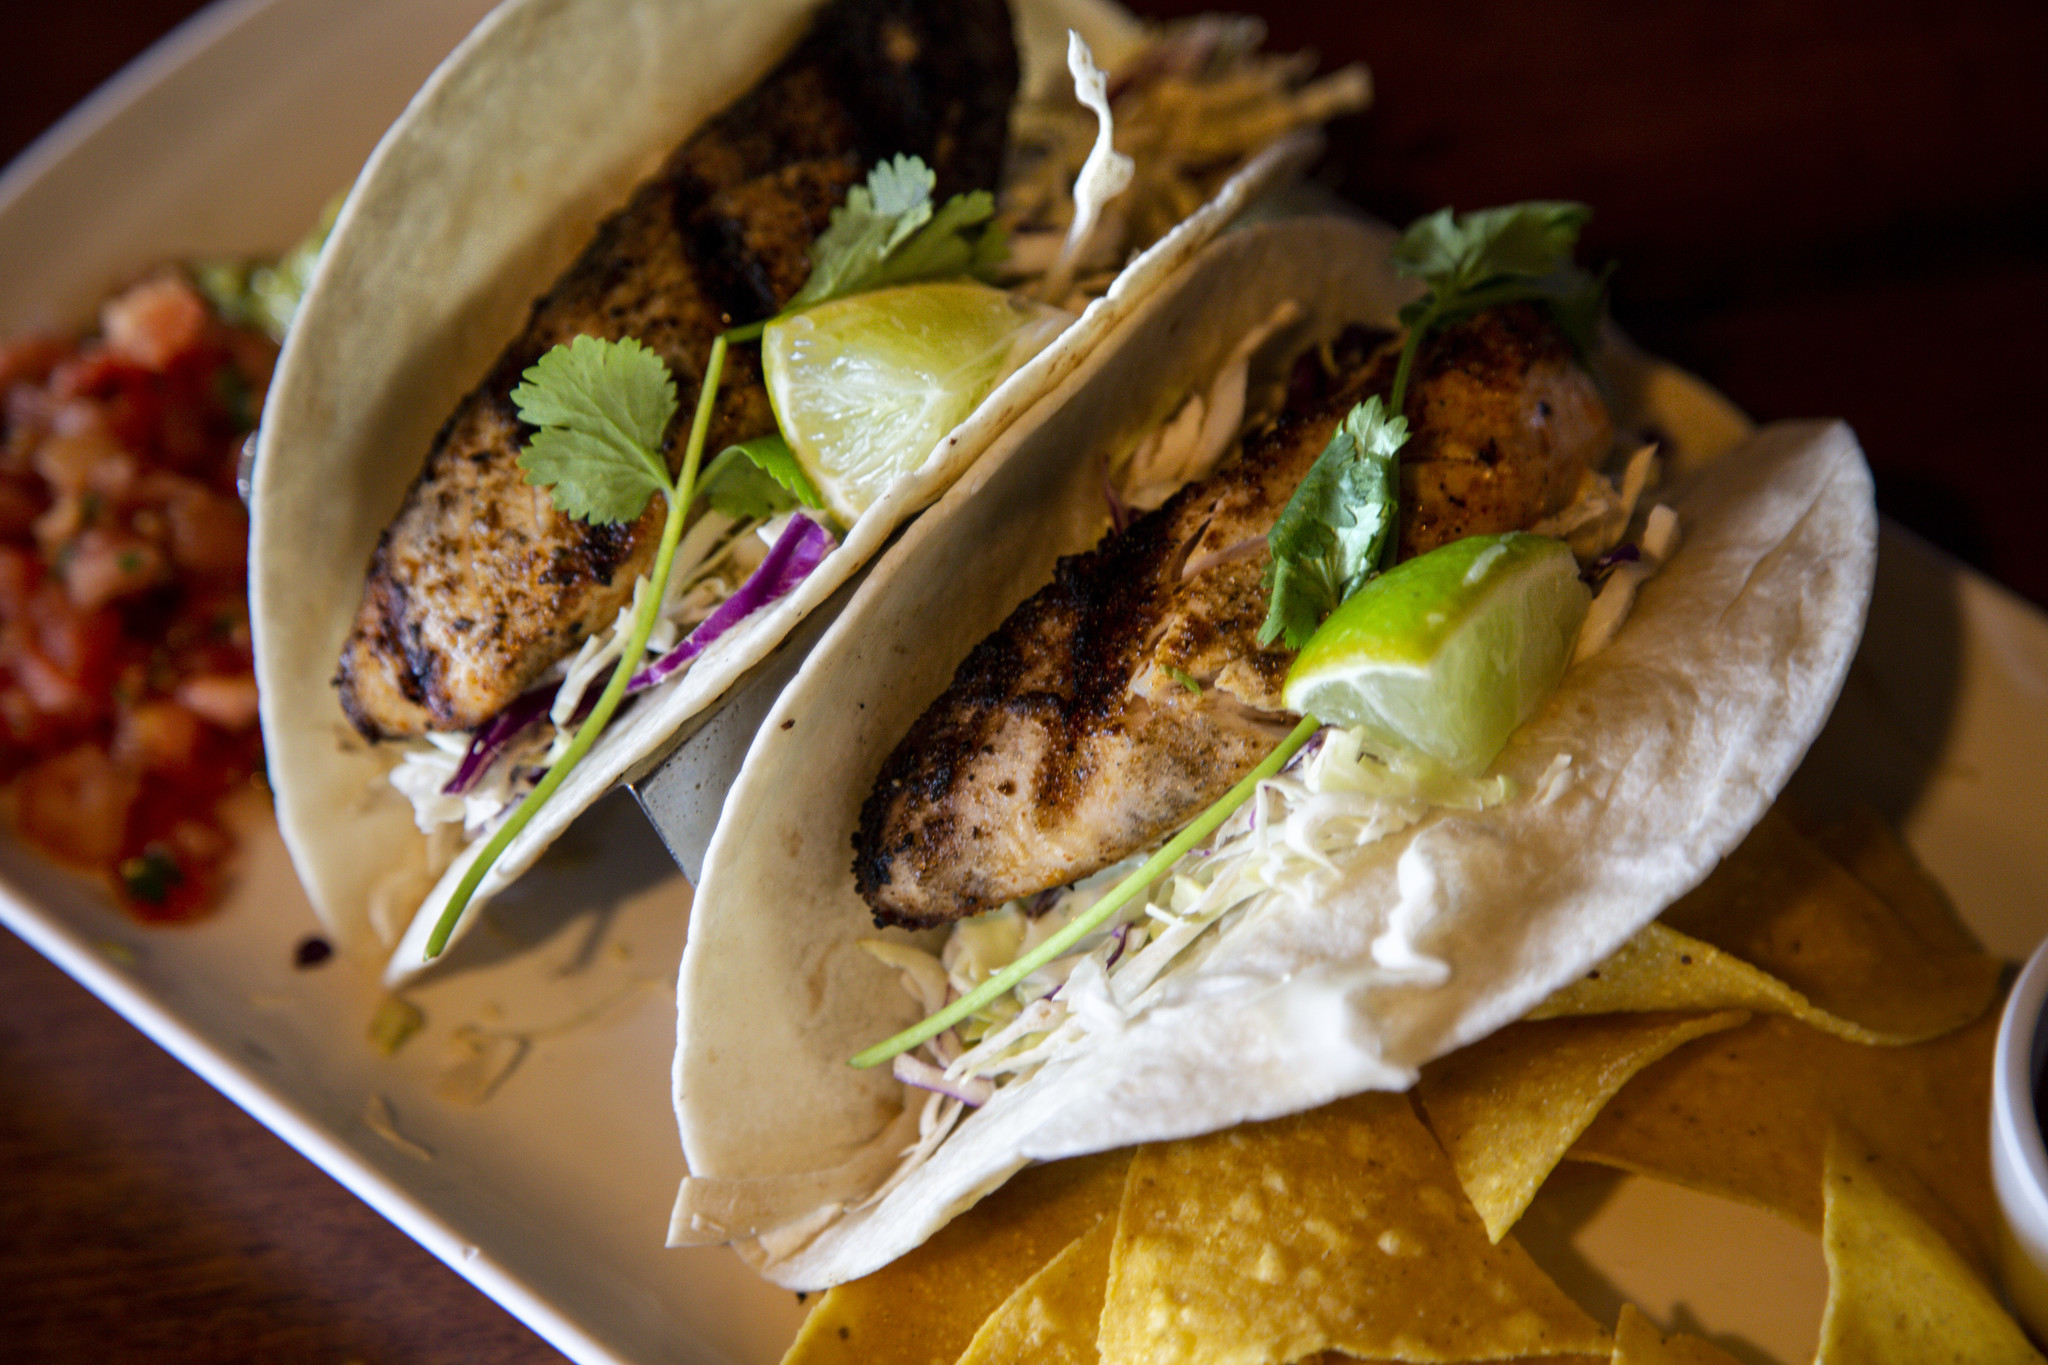 HONOLULU, HI - AUGUST 22: Tilapia Fish Tacos, served with Pico de gallo and chips, photographed at D